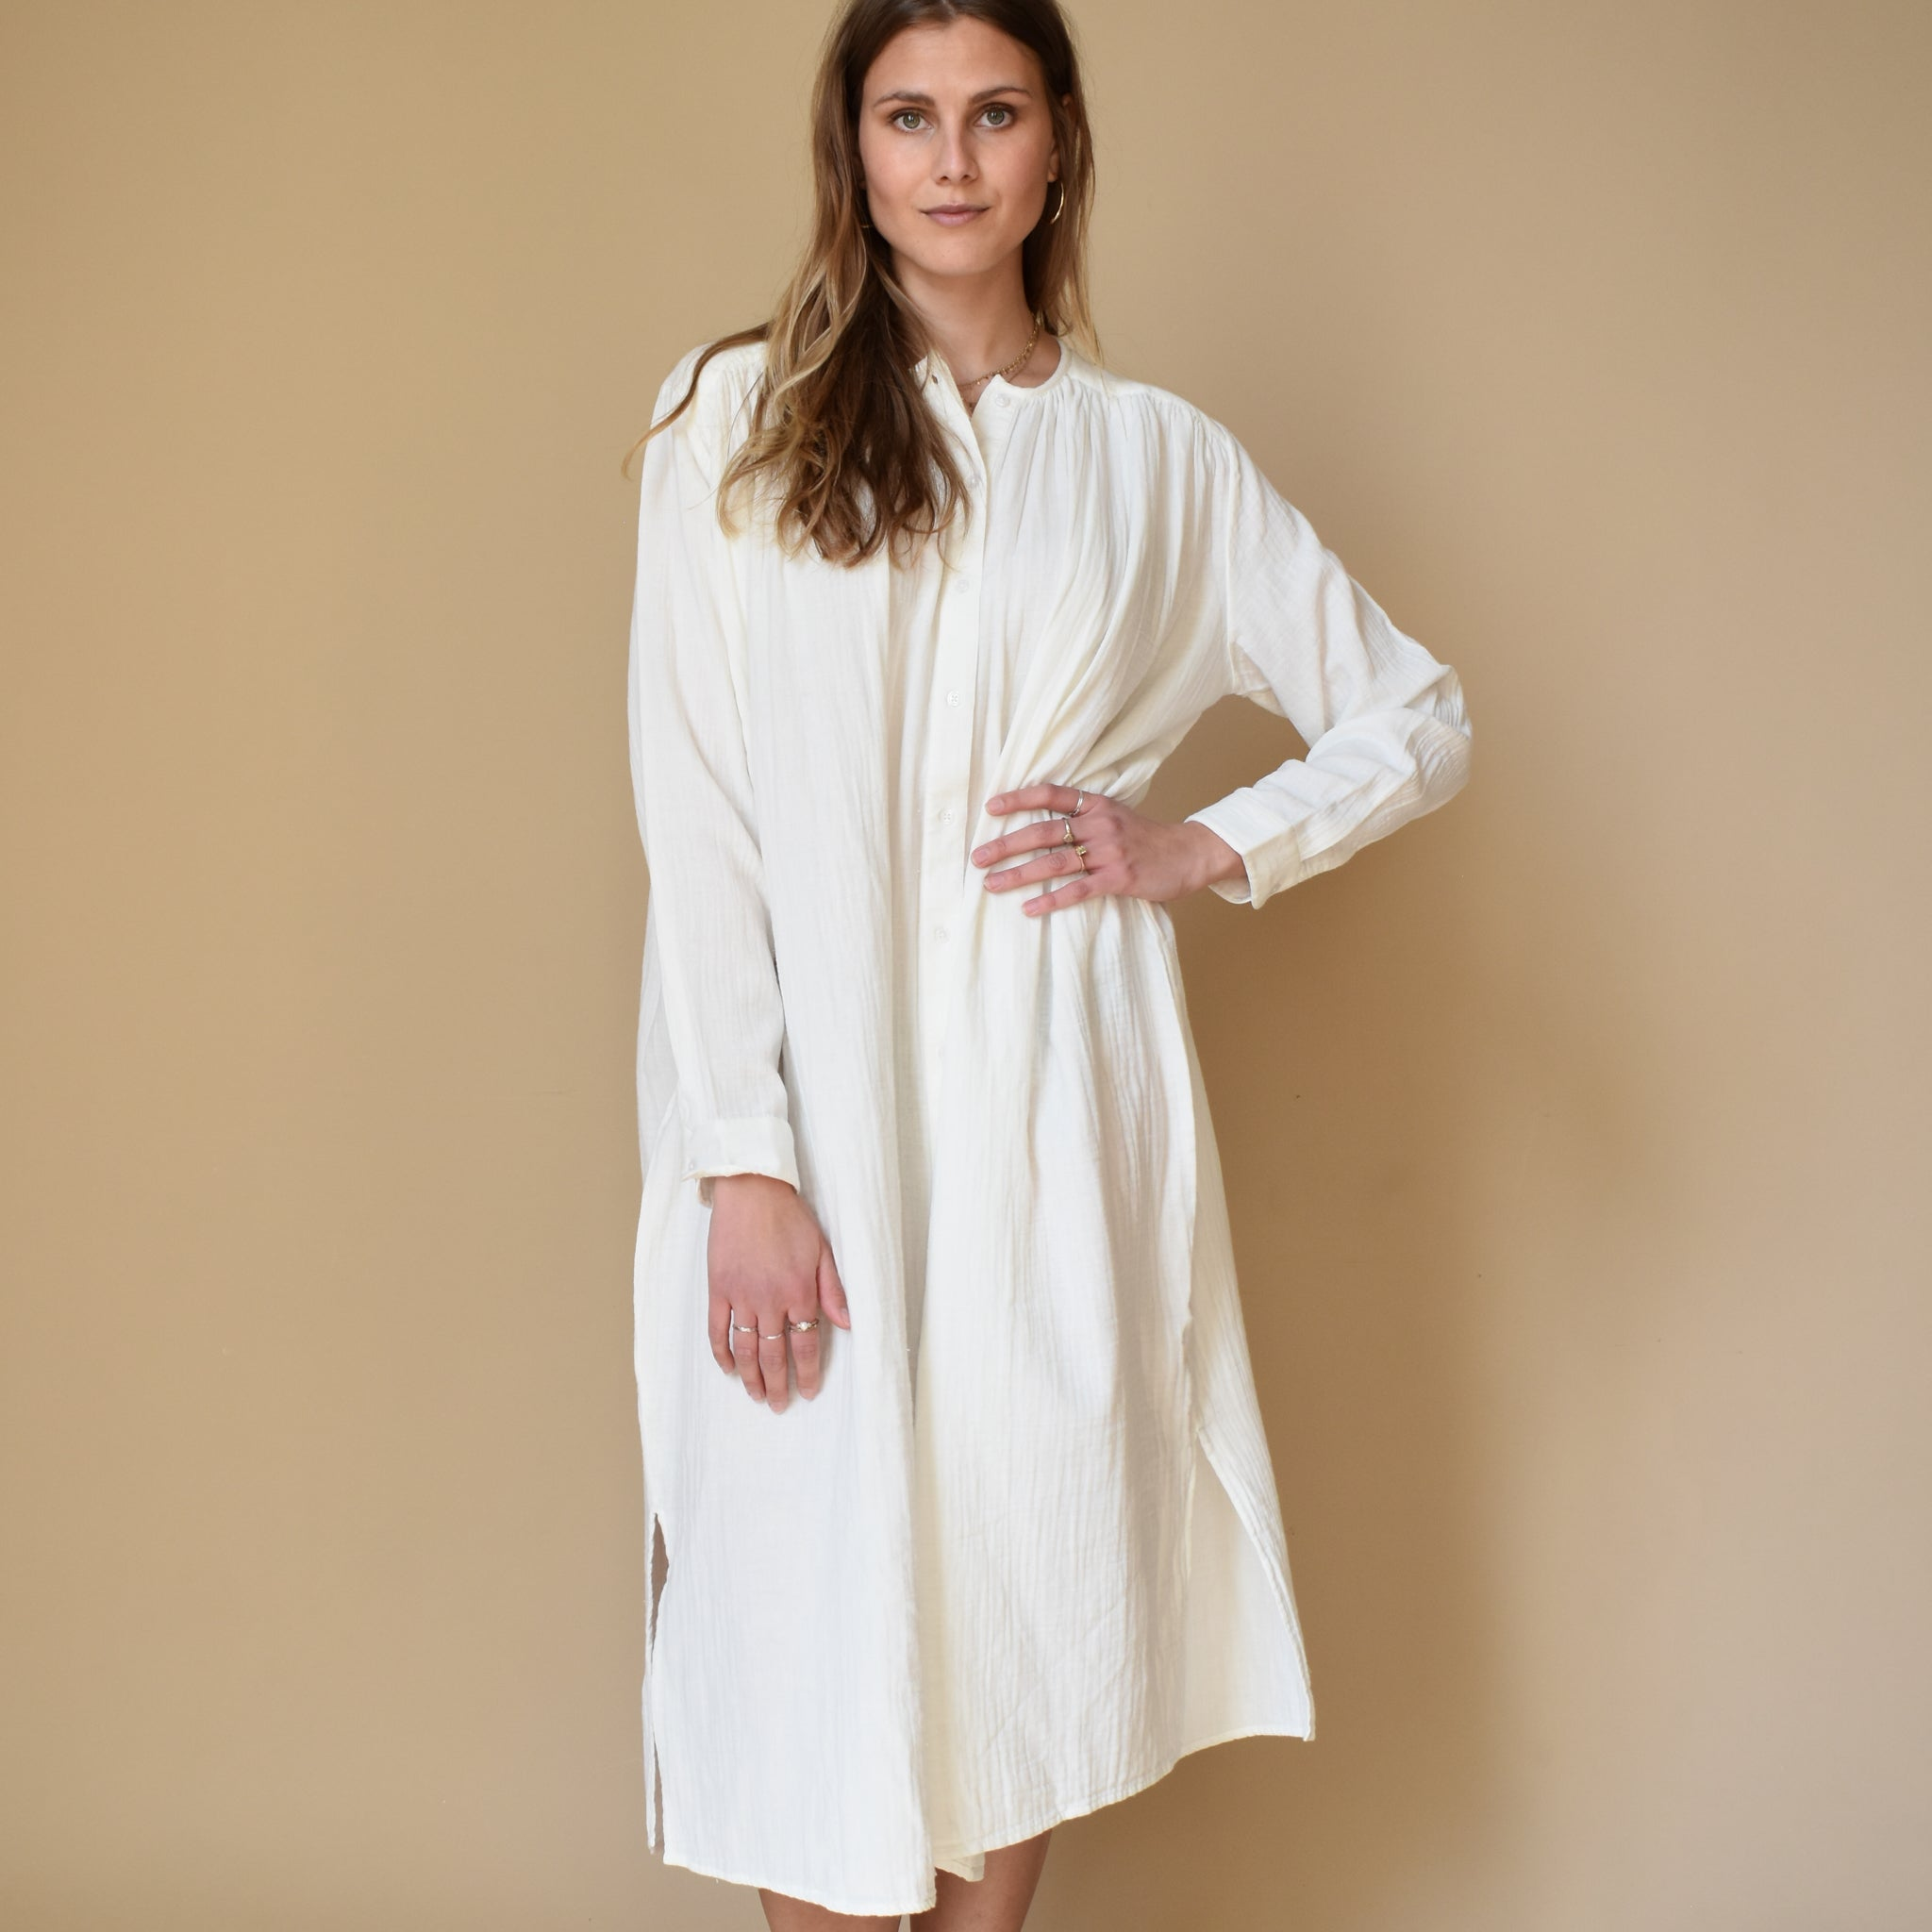 Brave Organic Cotton Dress